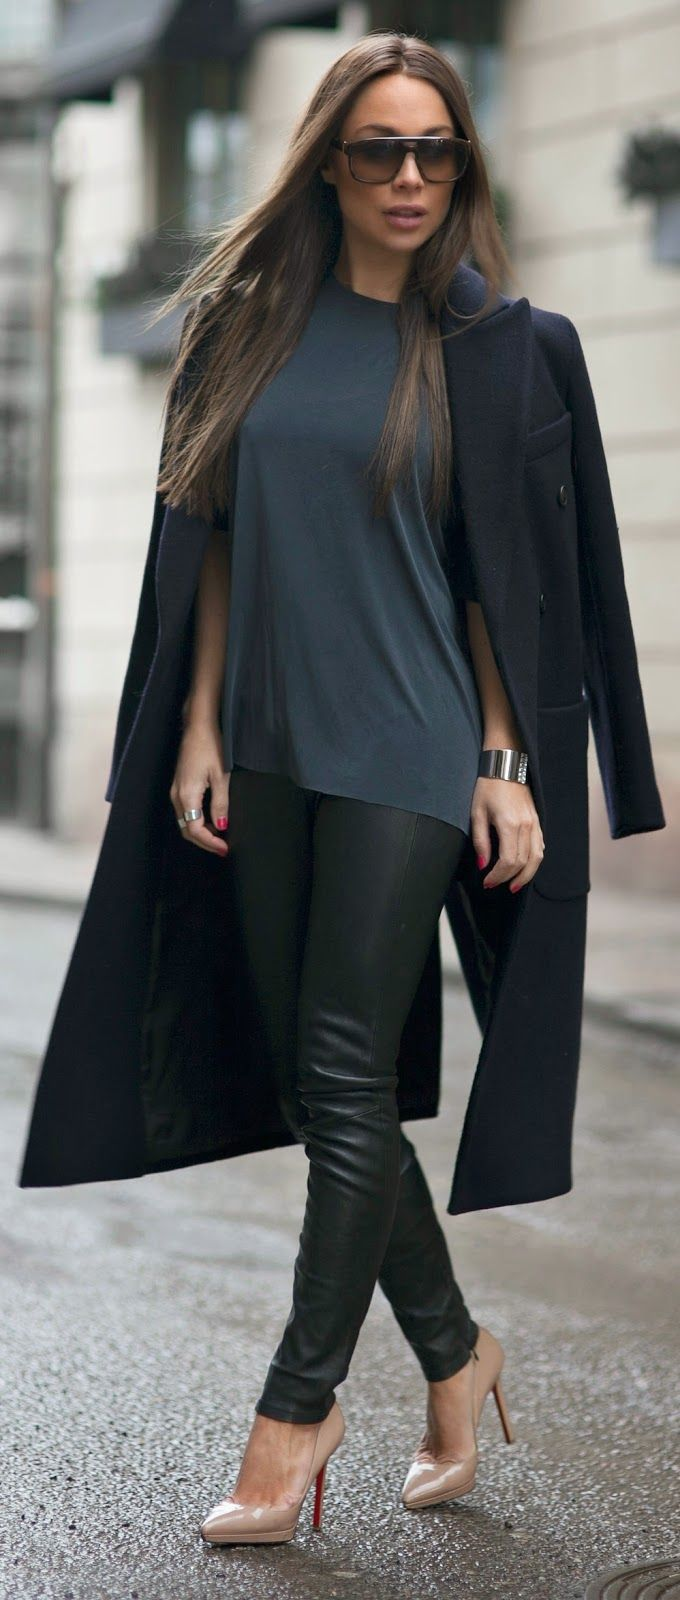 Faux Leather Pant , Cozy Black Coat , Chic Tee and Nude Heels by Johanna Olsson